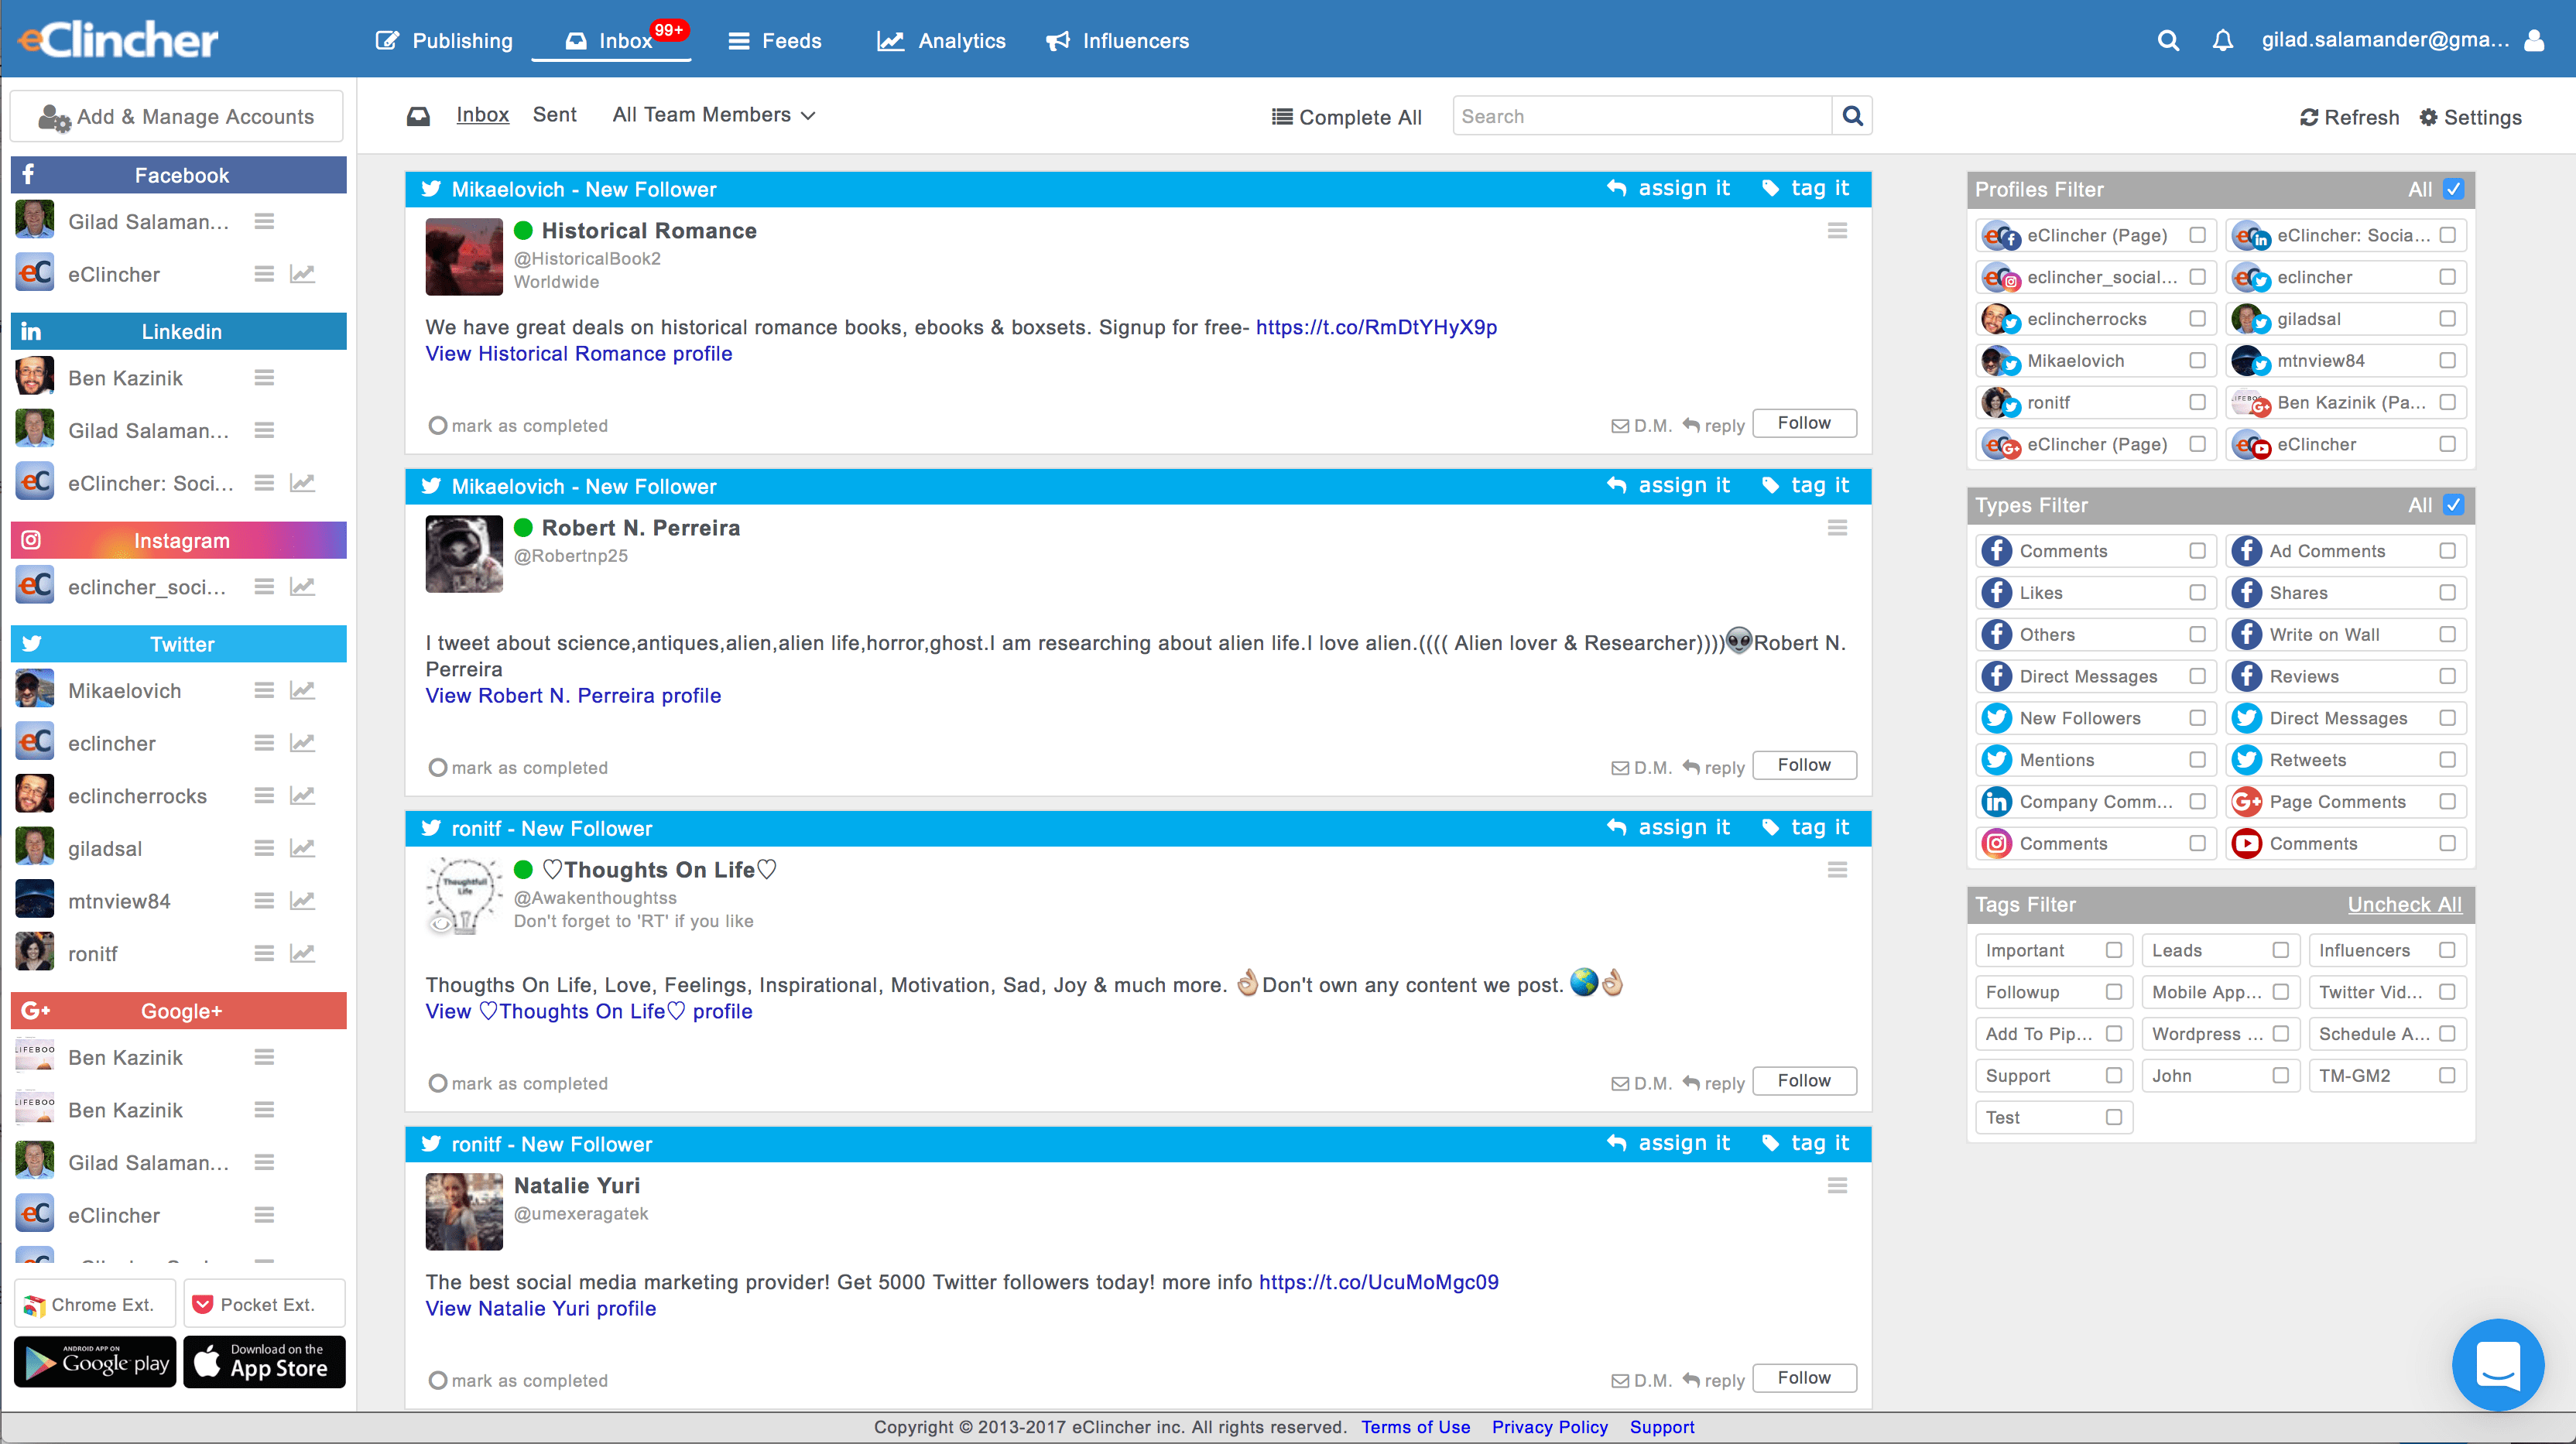 eClincher Software - Engage with unified social inbox. Manage conversations, comments, mentions, new followers, and more